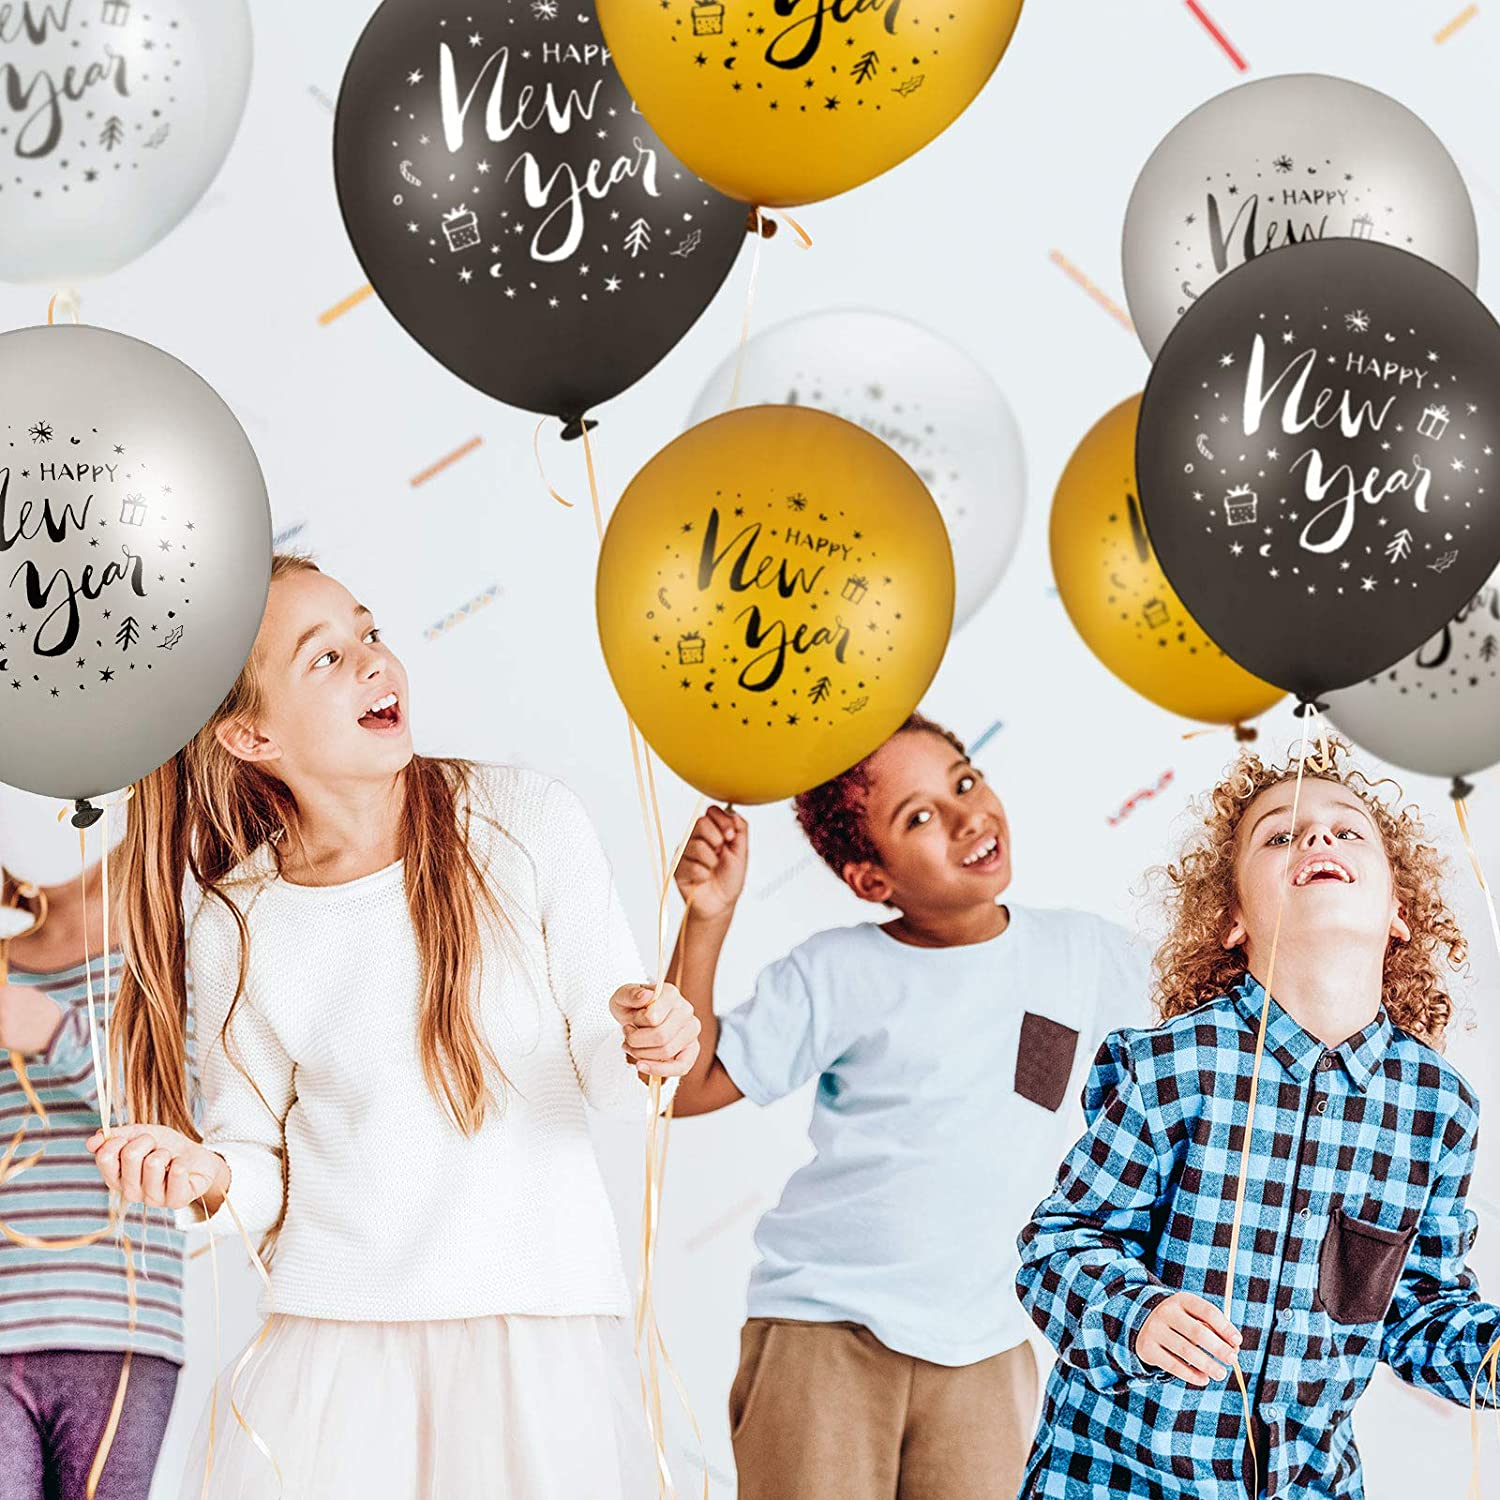 40 Pieces Happy New Year Balloons 2021 New Year Latex Balloons 12 Inches Gold Black Silver Balloons for 2021 New Year Eve Party Decorations Supplies